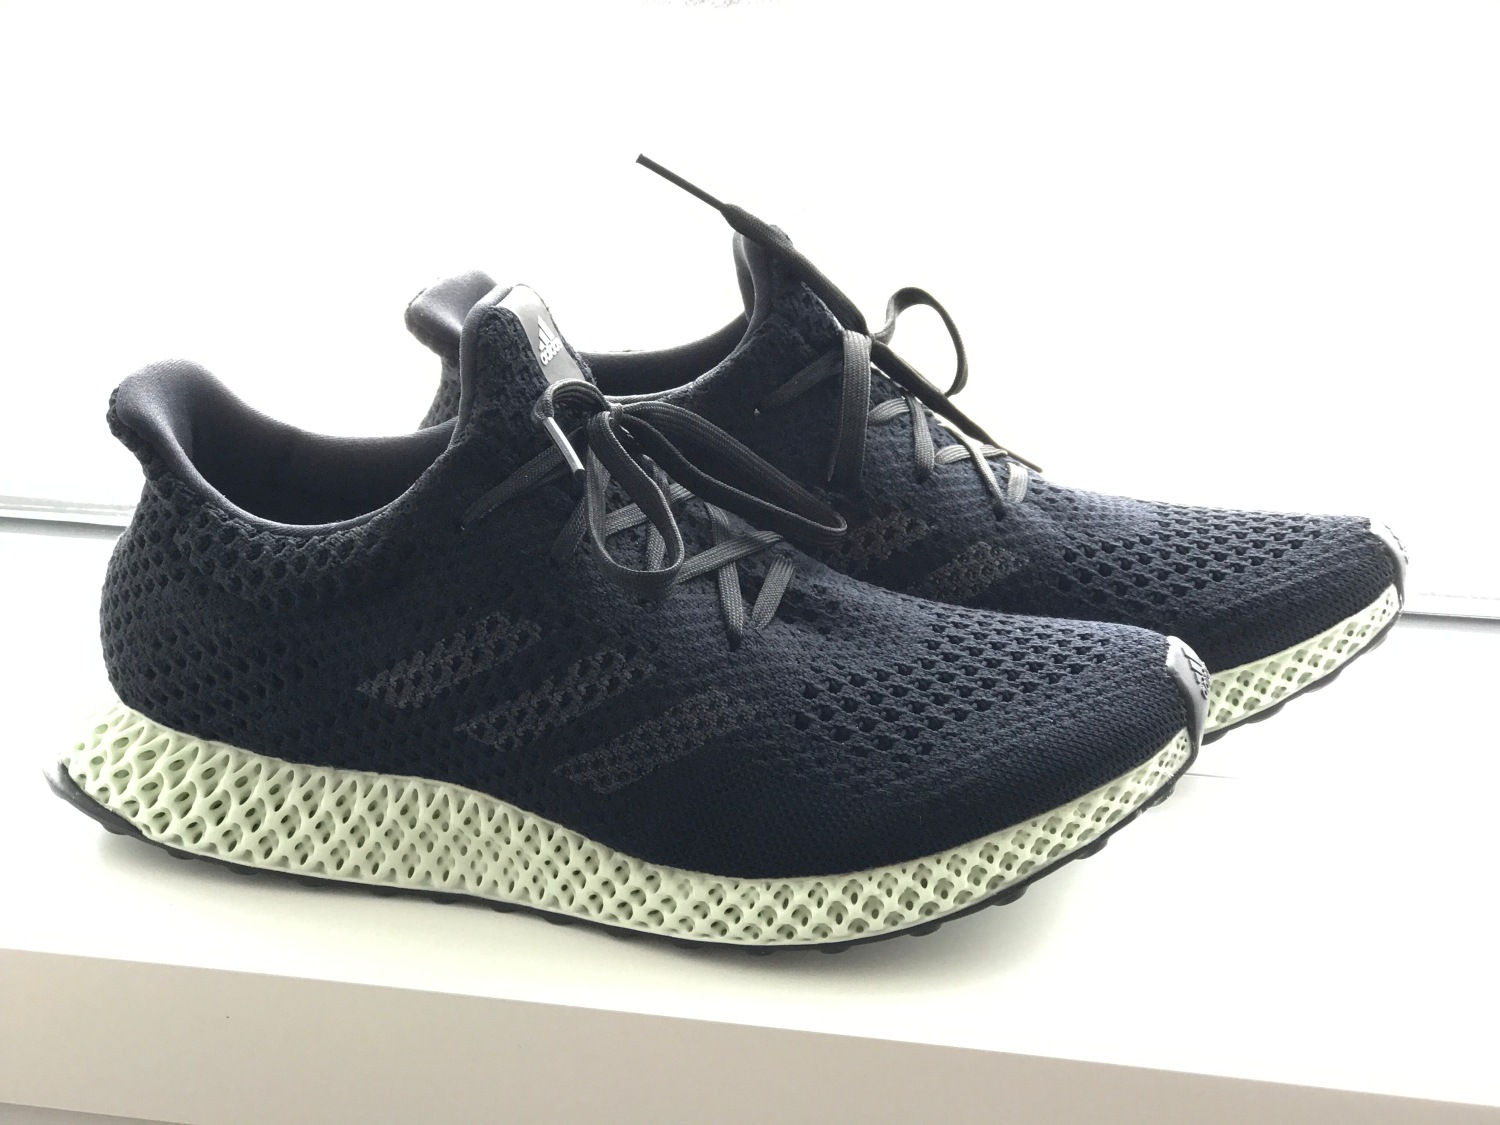 6d183de84db3 Adidas  latest 3D-printed shoe puts mass production within sight ...